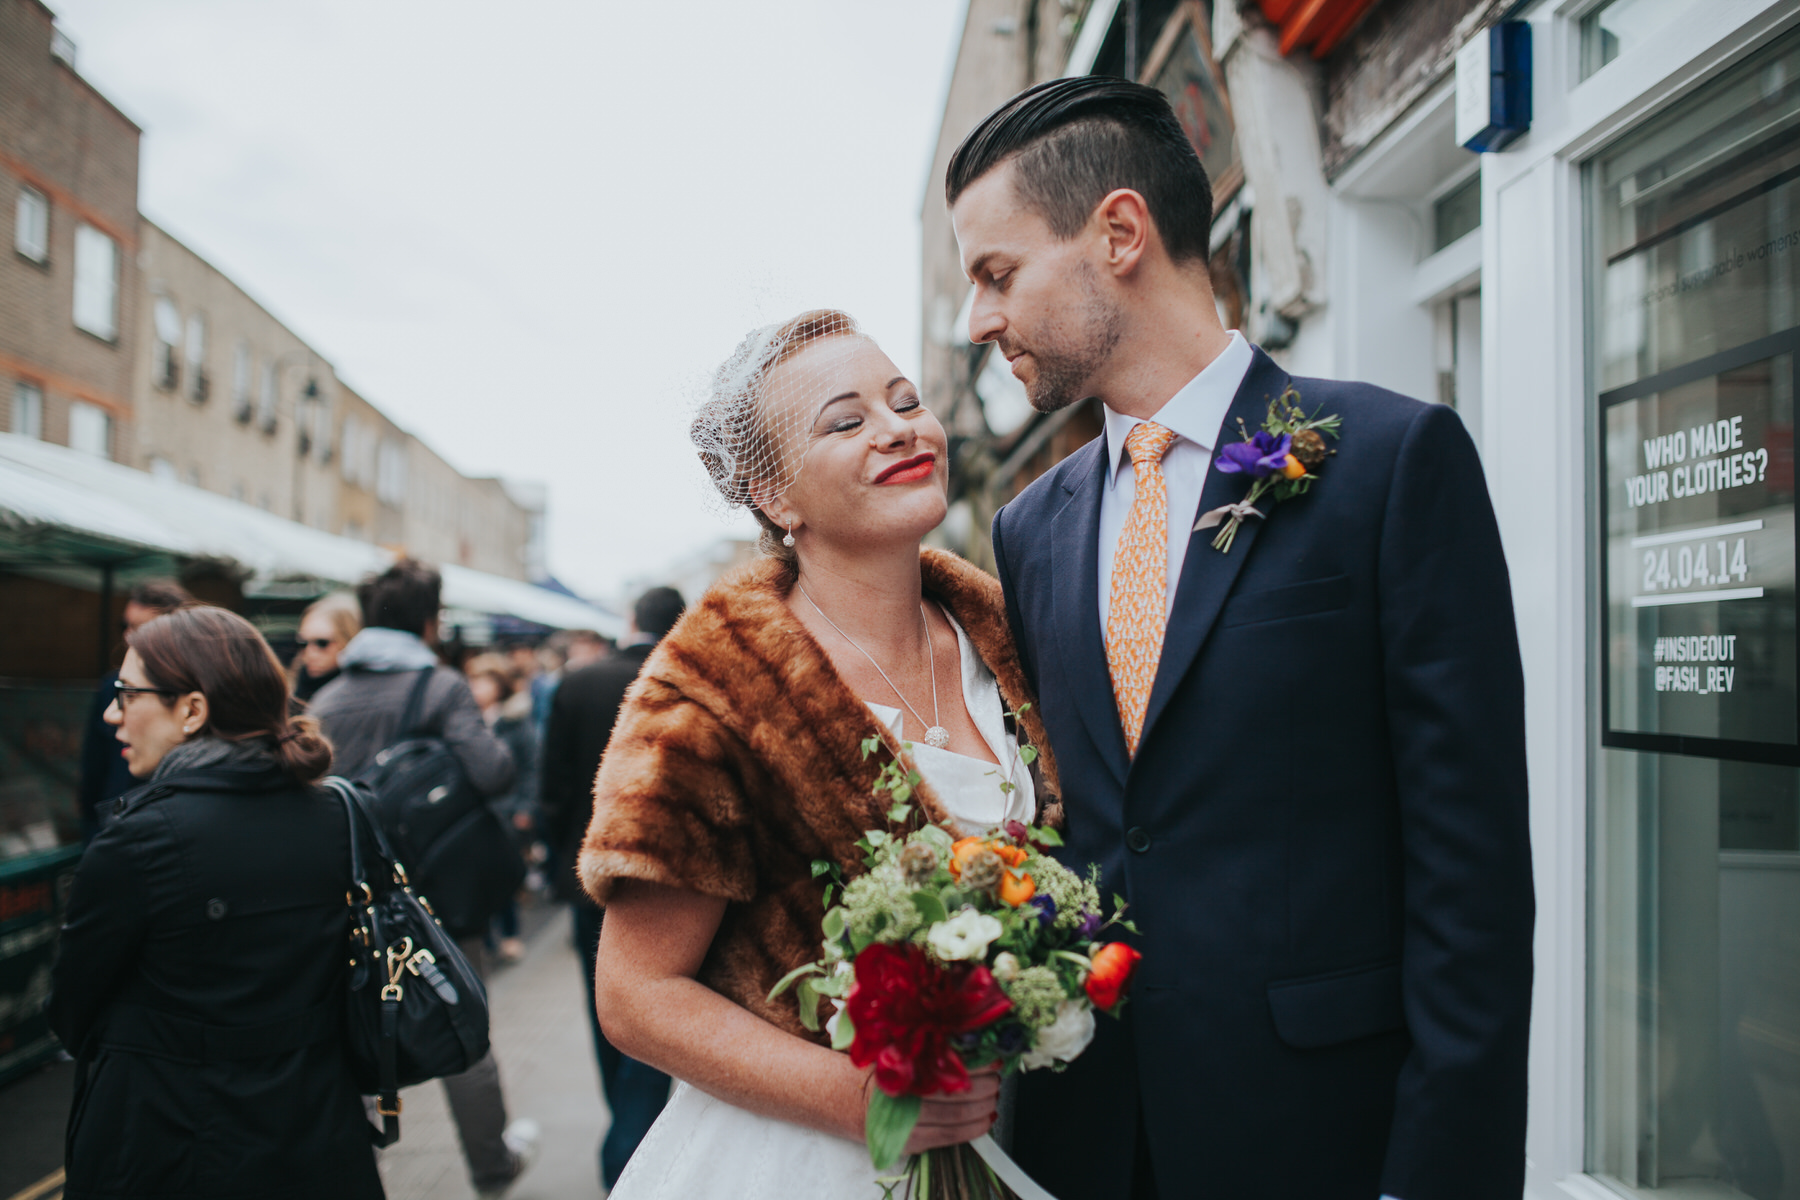 MS-Londesborough-Pub-wedding-Hackney-alternative-photographer-35-wedding-portraits-Broadway-market-quirky-couple-kissing.jpg